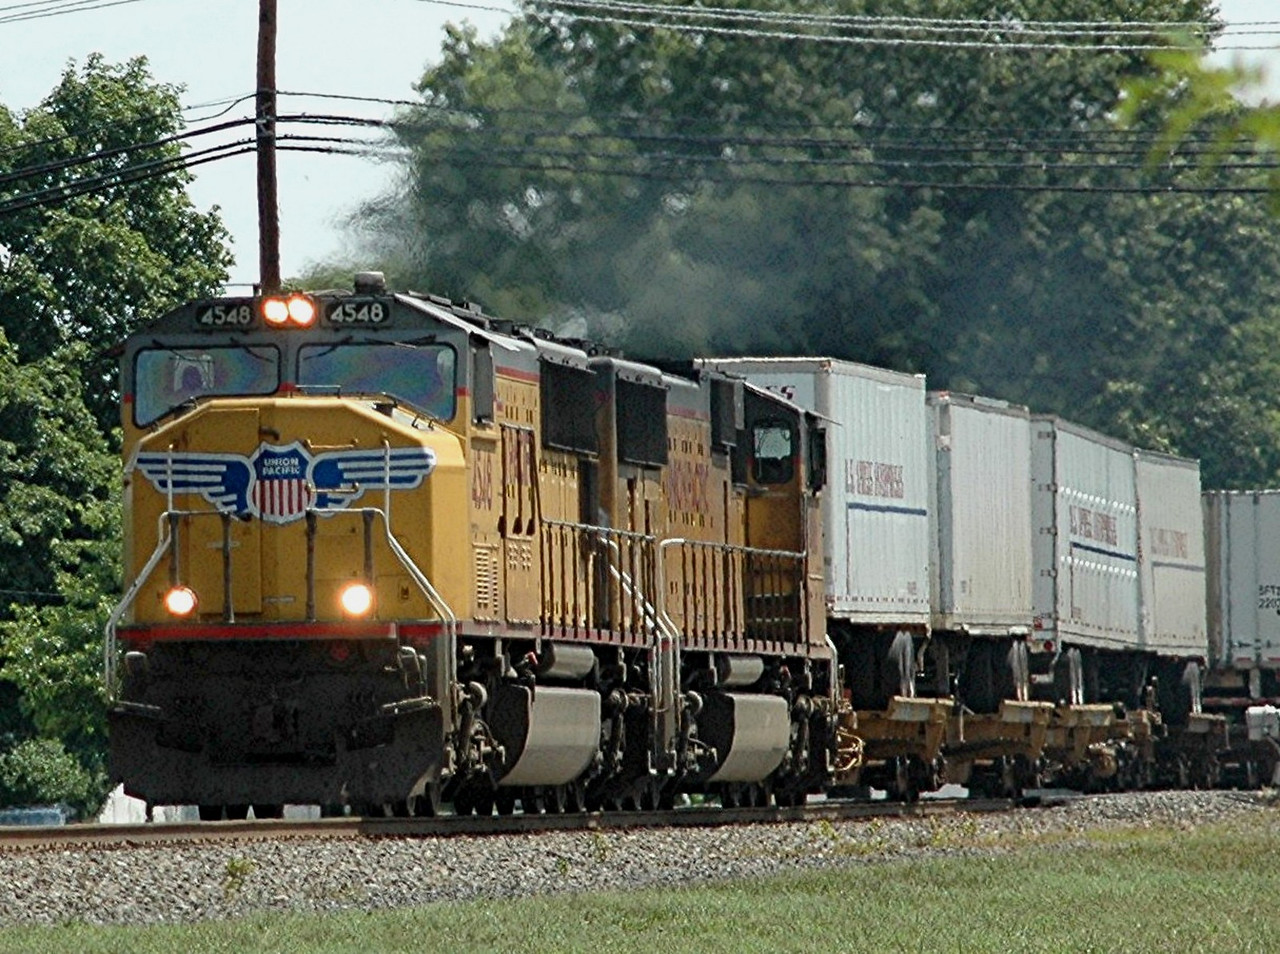 Union Pacific  SD70-M  4548 pushes west from Oak Island yard in Newark N.J. on thr Lehigh Line  Photo taken at 16th St. crossing  at Manville , N,J.